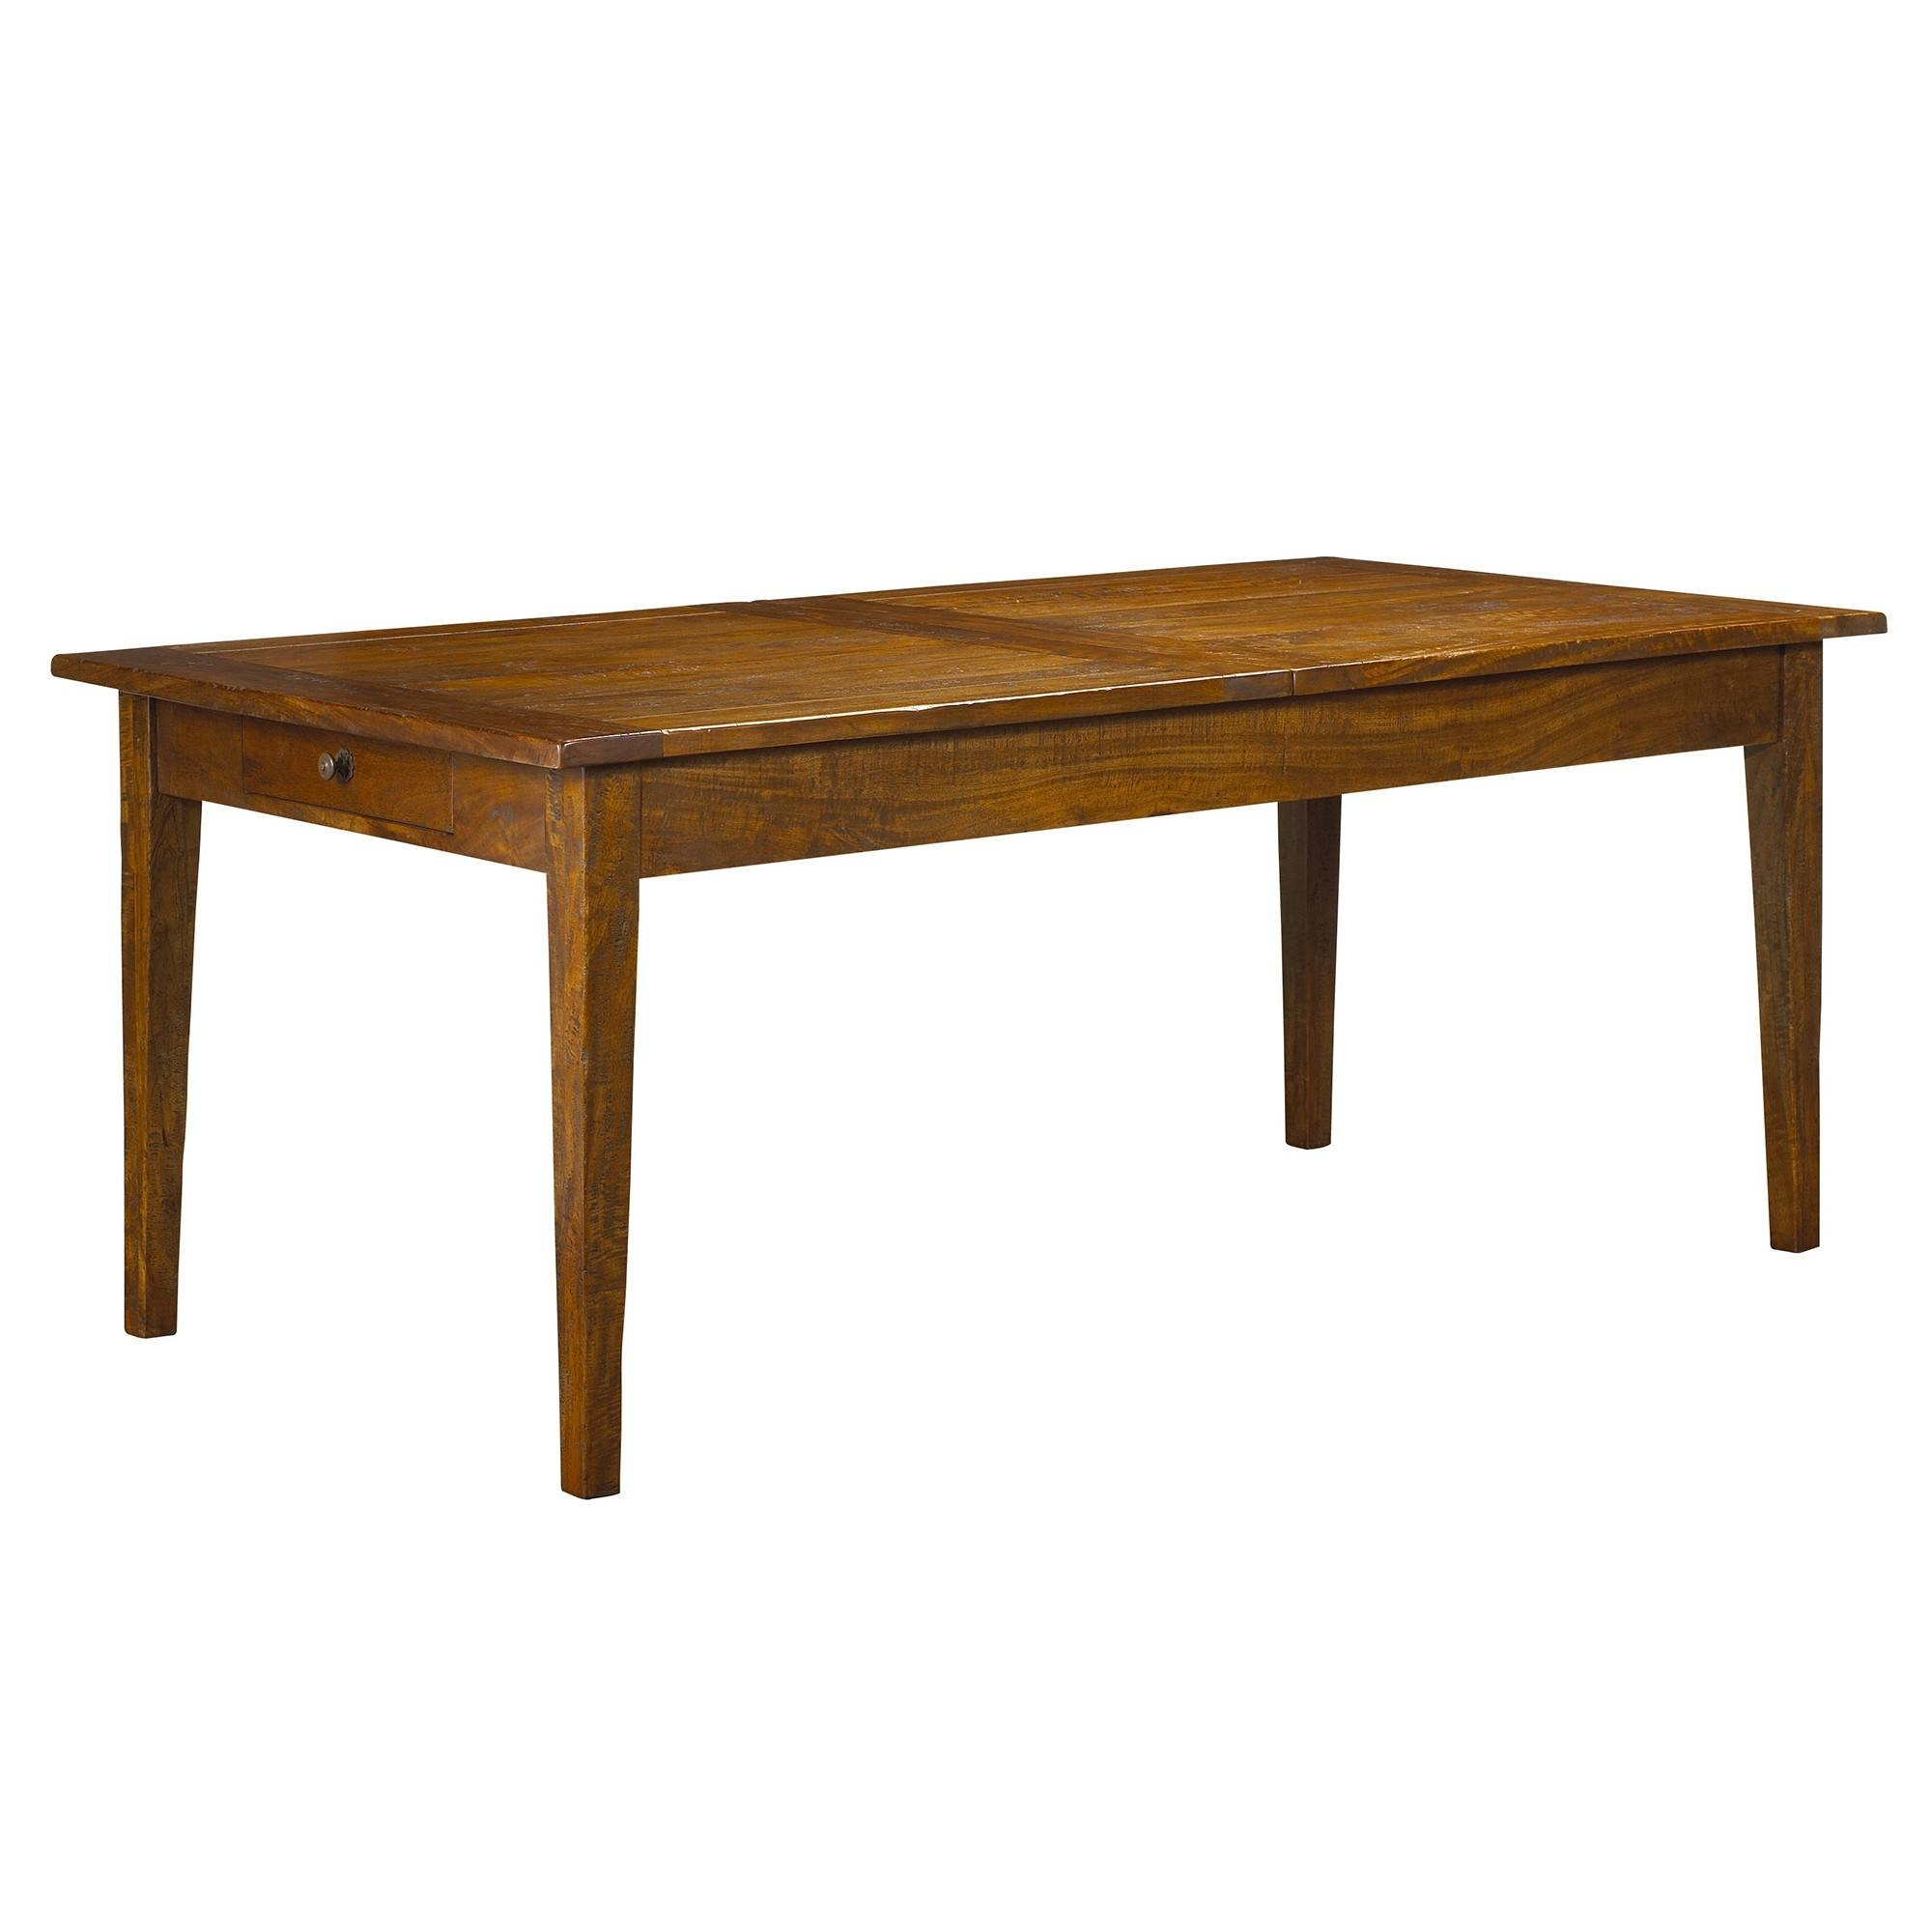 Payson Farm Table - Coffee | French Heritage M-2520-1207-Cbrh intended for Heritage Coffee Tables (Image 25 of 30)